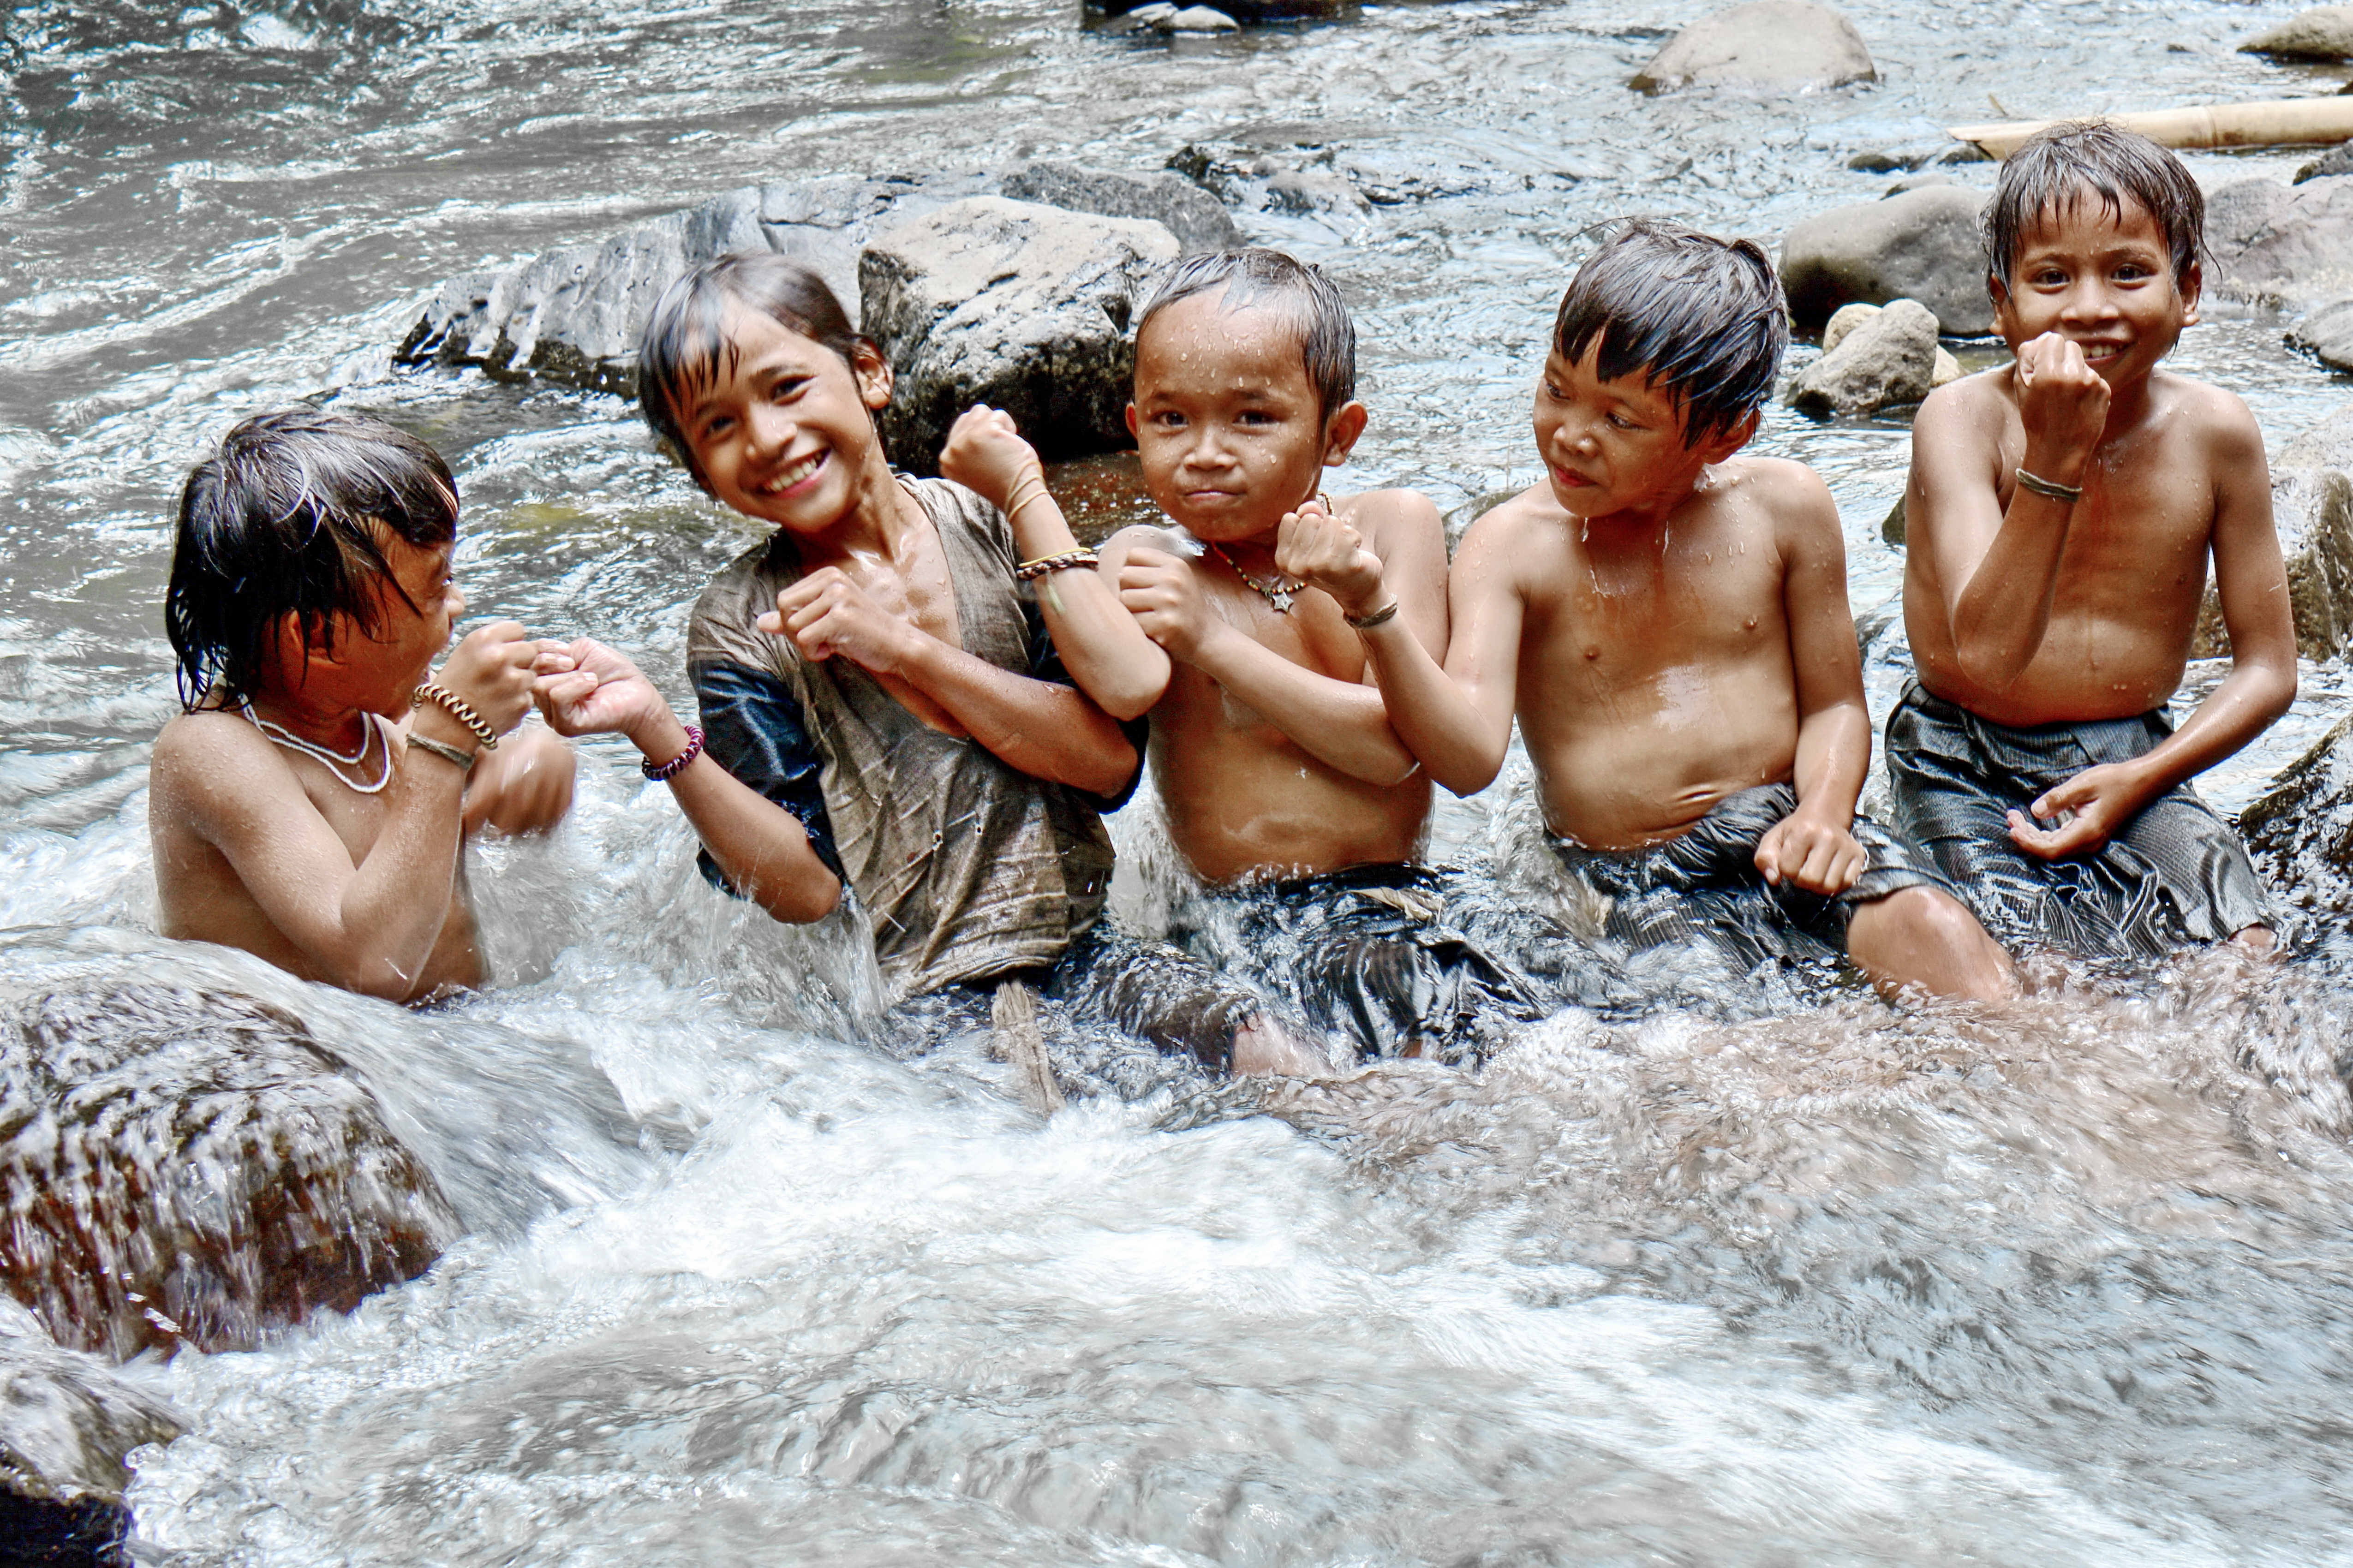 ©SMILE OF CHILDREN, BADUY TRIBE. Photograph by Sis Jimbo. Indonesia, 2014